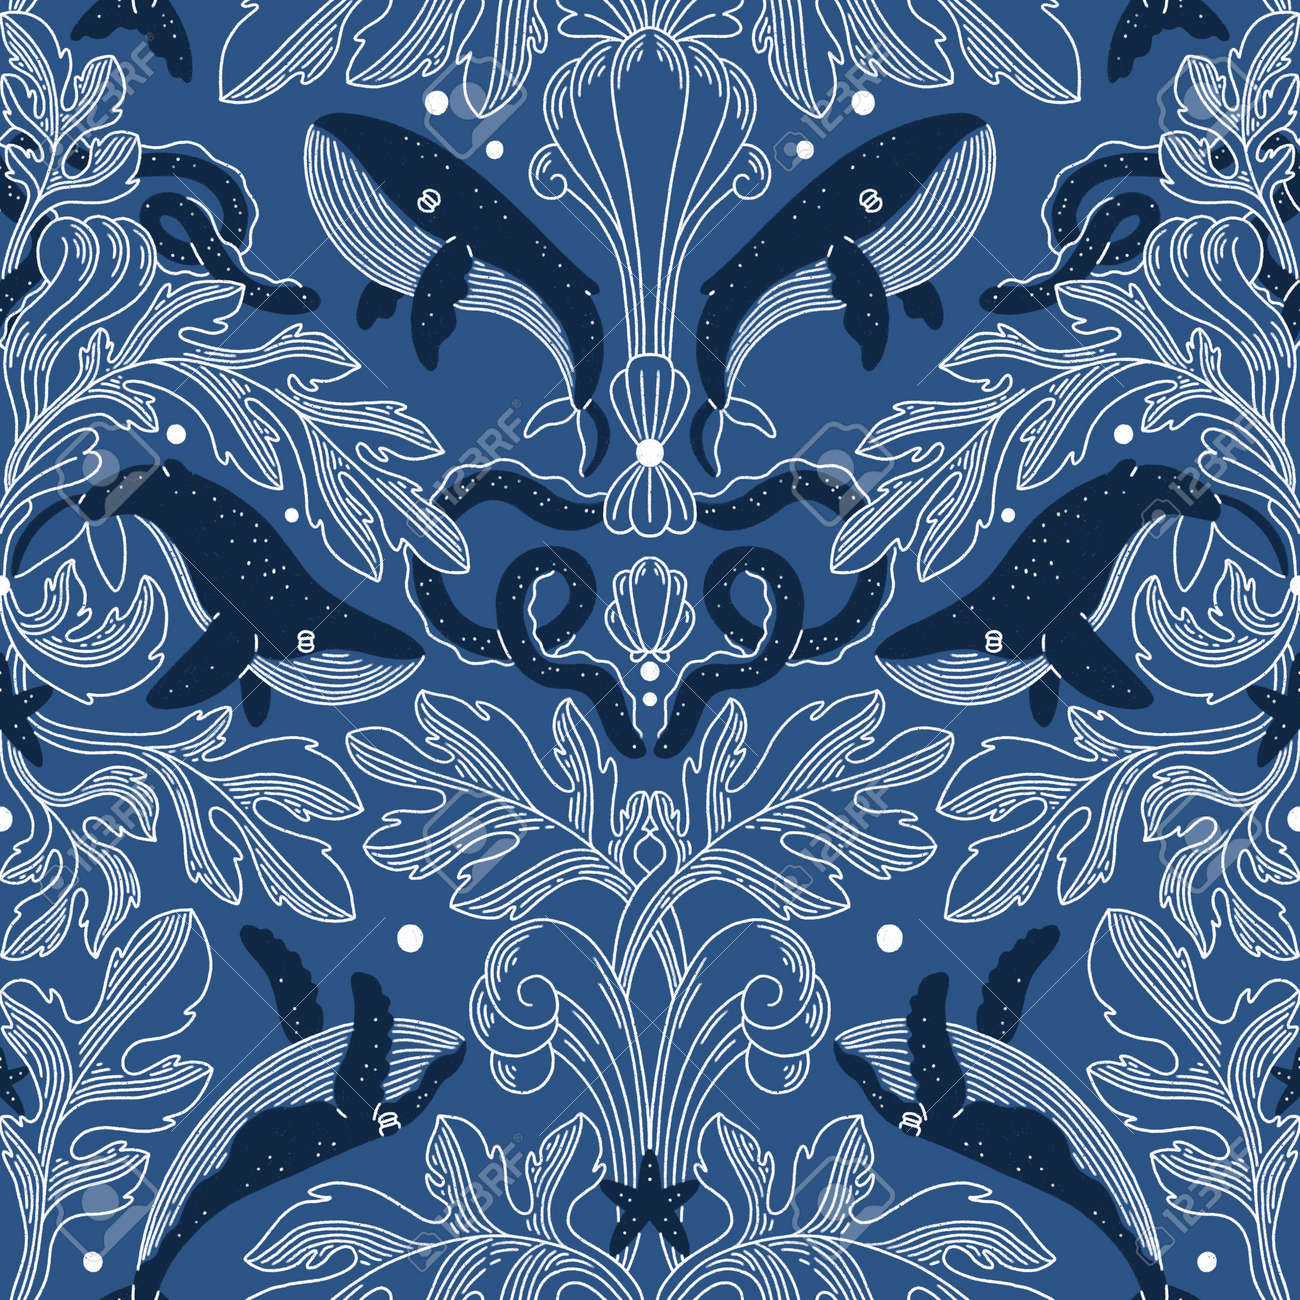 Nautical damask texture with whales, modern vintage seamless pattern illustration - 166345108